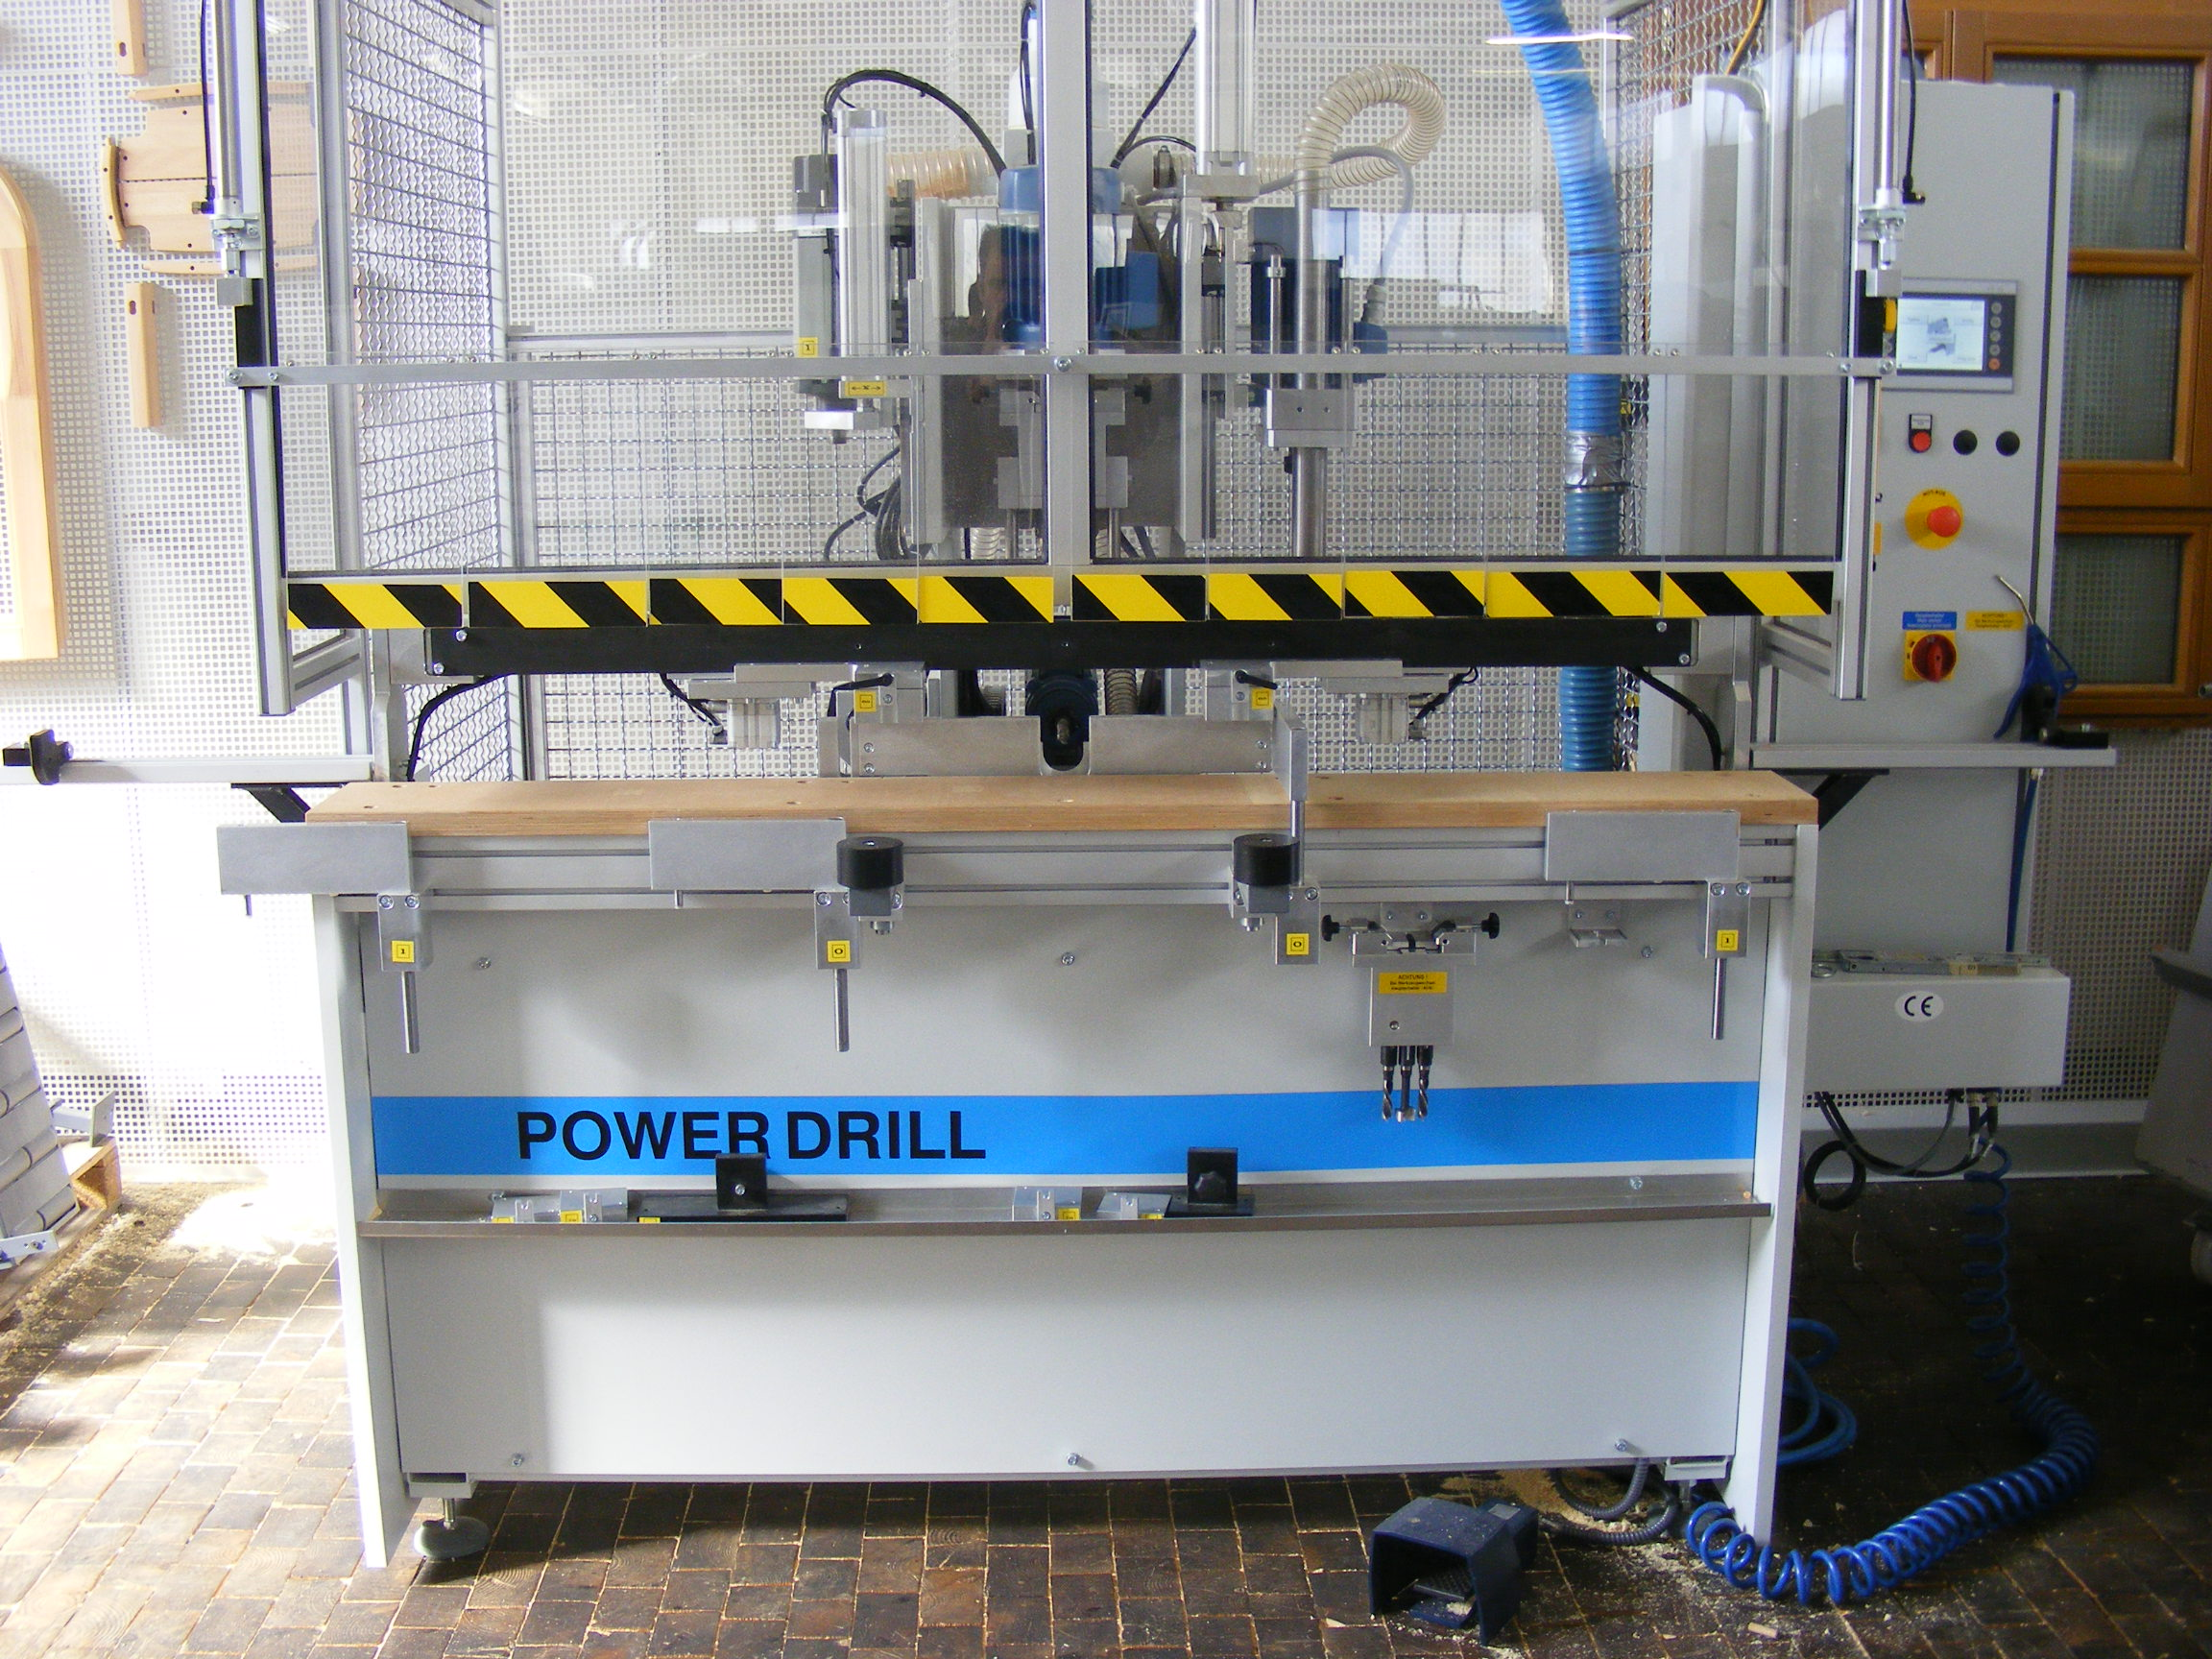 Power Drill window drilling machine in workshop environment